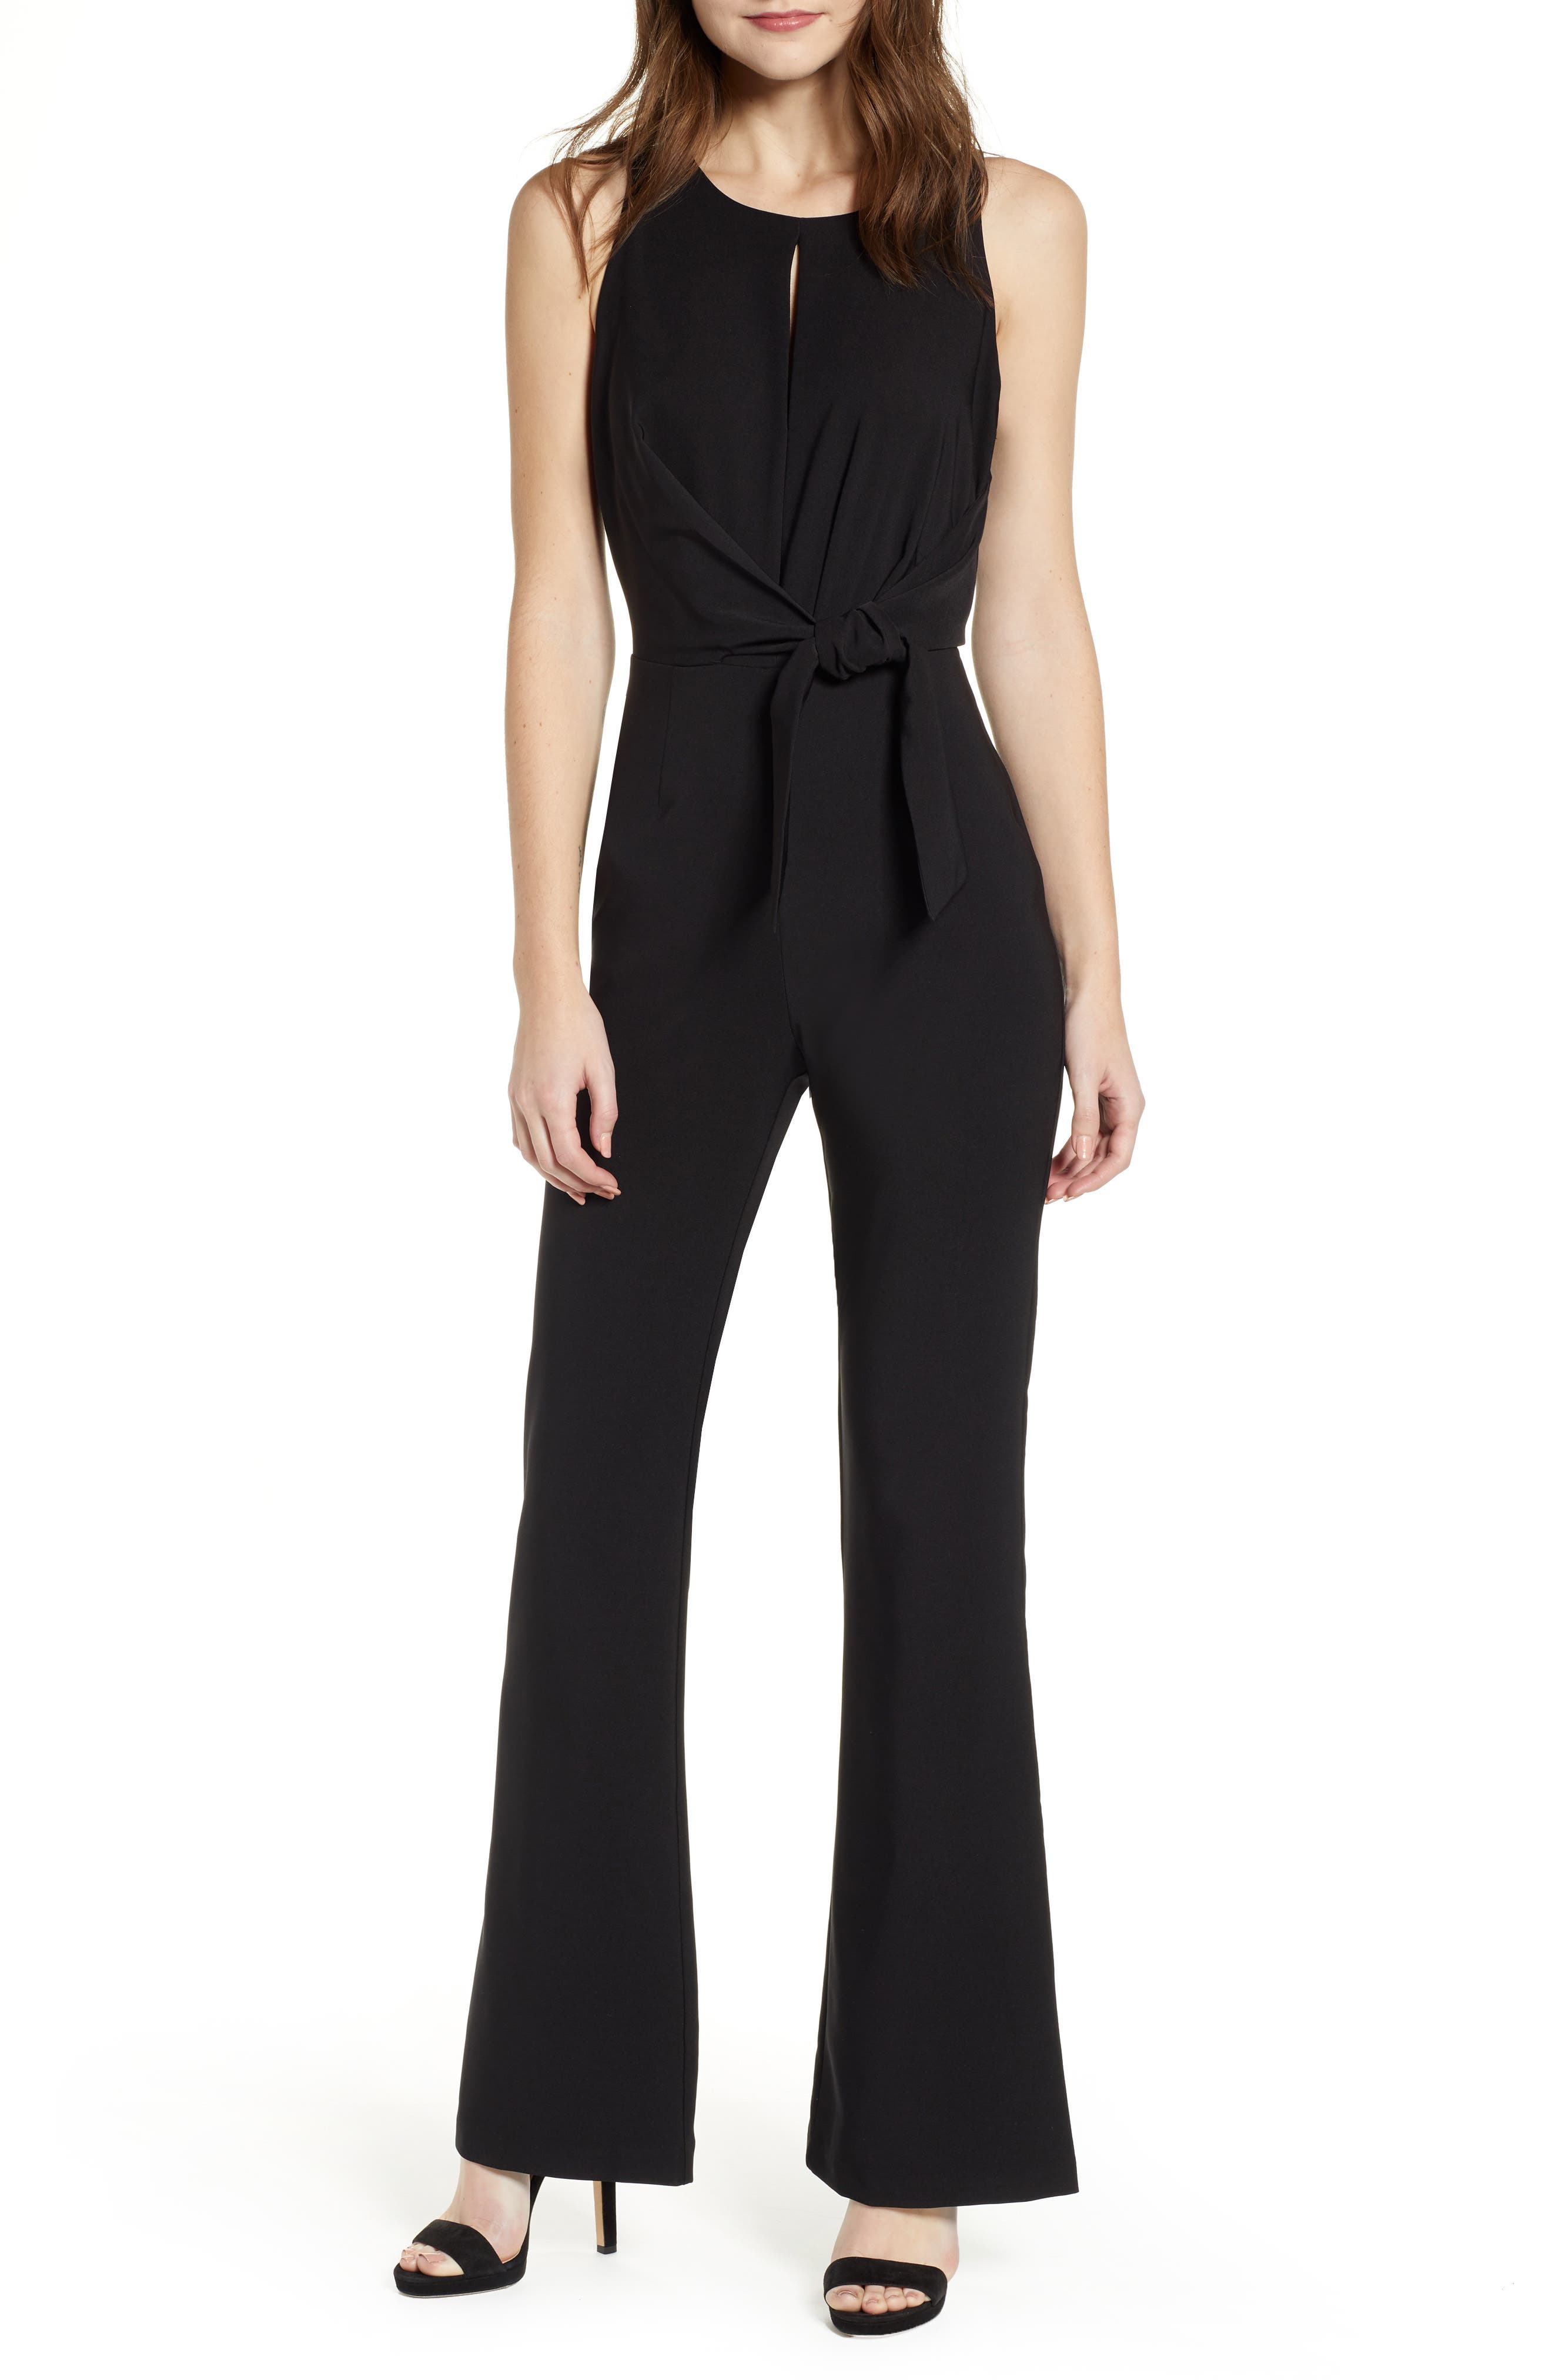 SOCIALITE Tie Front Jumpsuit, Main, color, BLACK